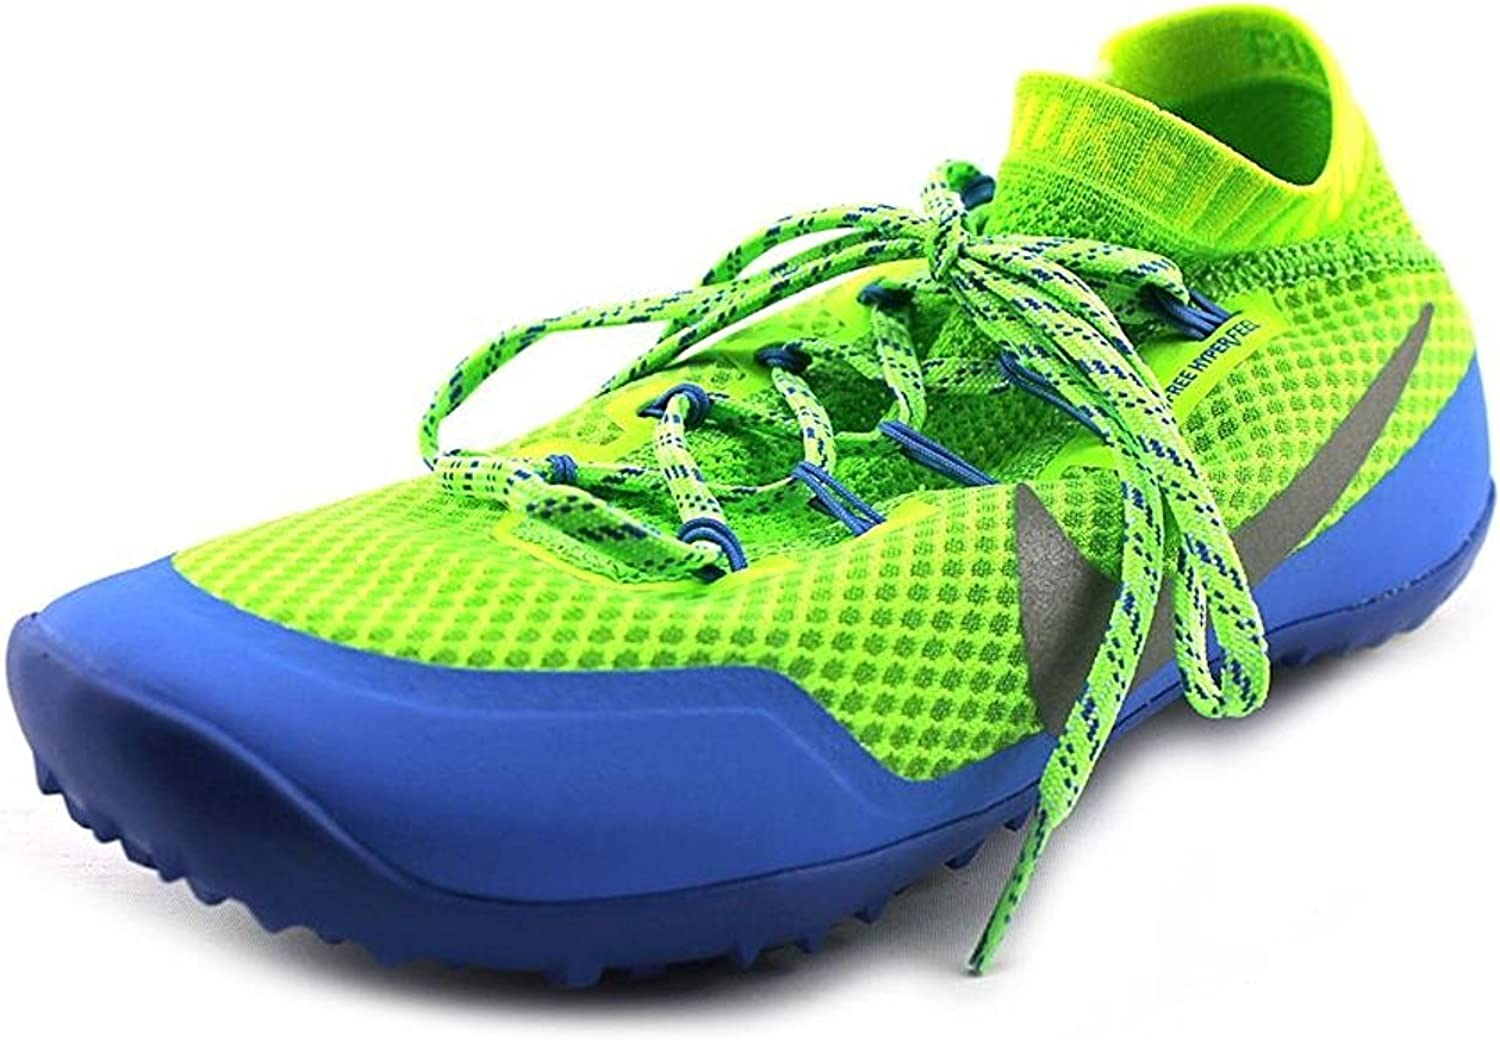 Excelente congelador Es barato  Nike Womens Free Hyperfeel Run Trail Running Shoes Blue/green 9 B M US:  Amazon.ca: Shoes & Handbags